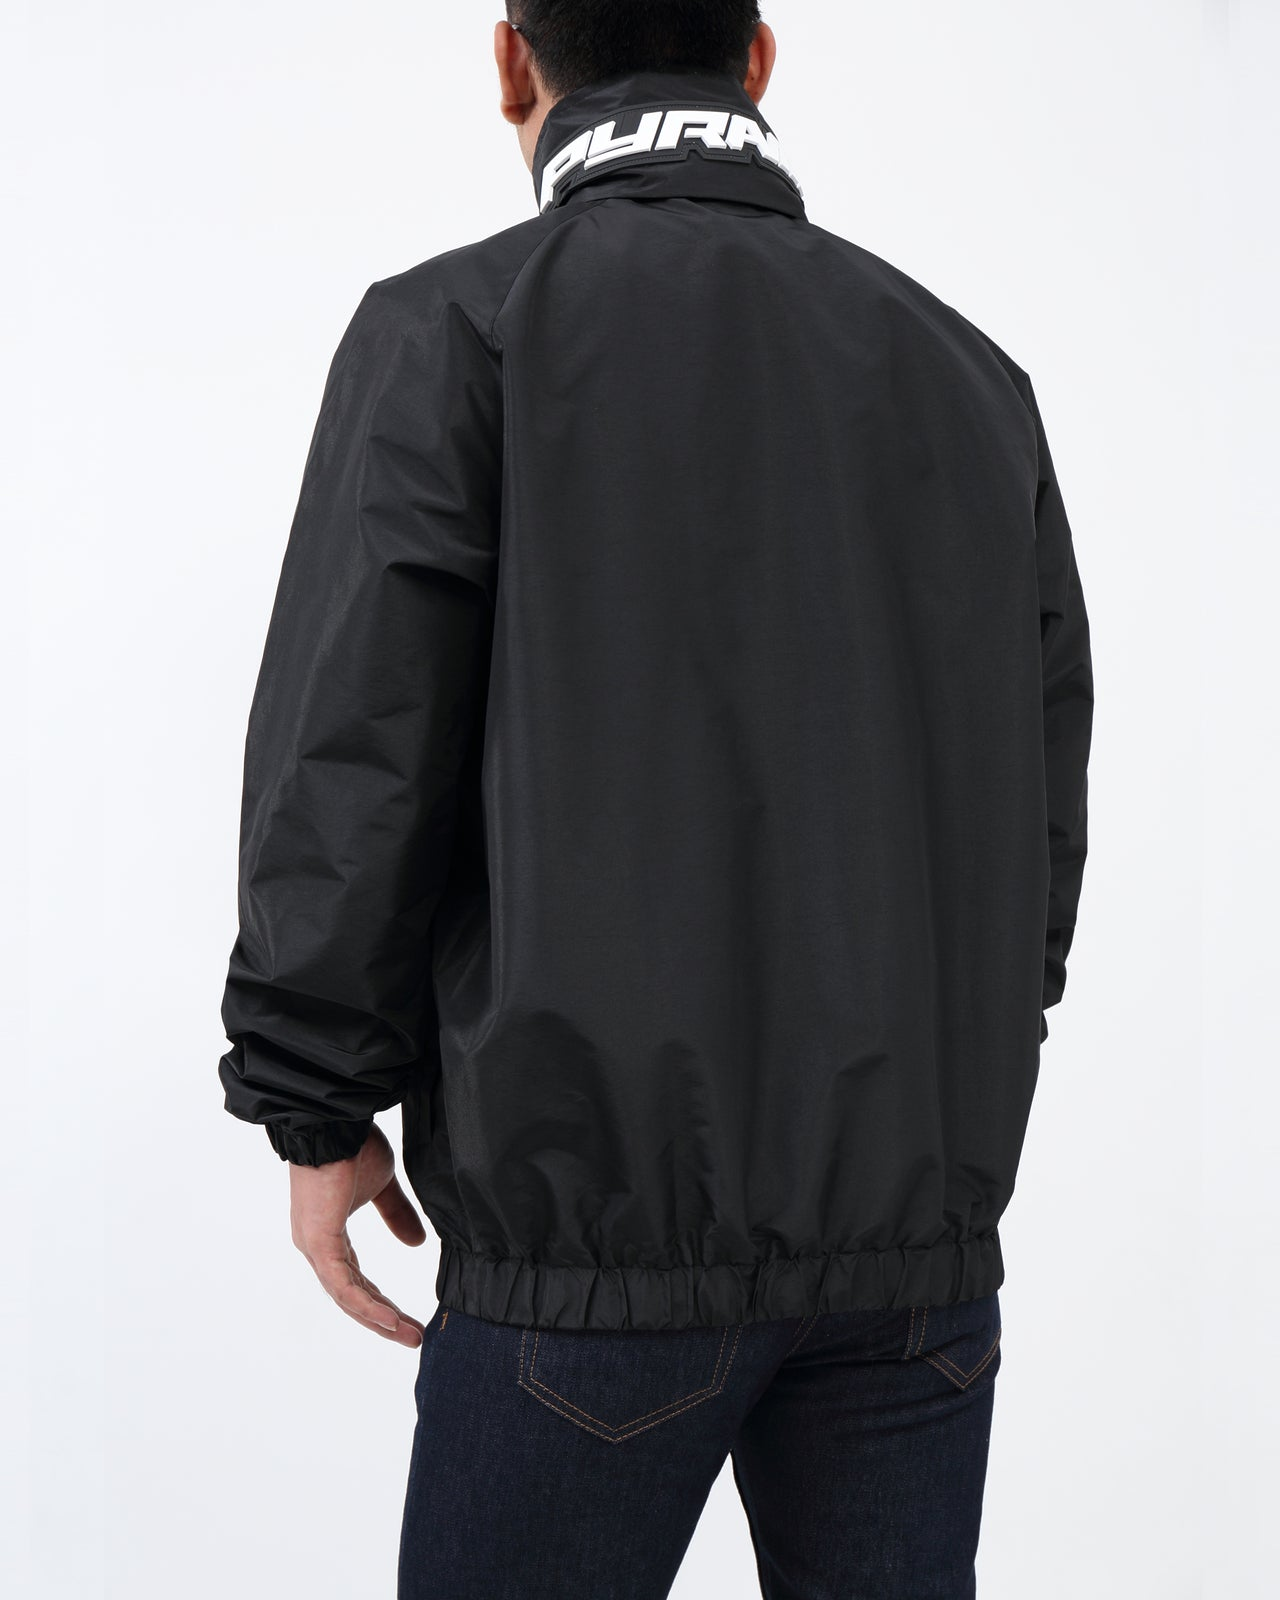 BP Iridescent Windbreaker JKT - Color: Black